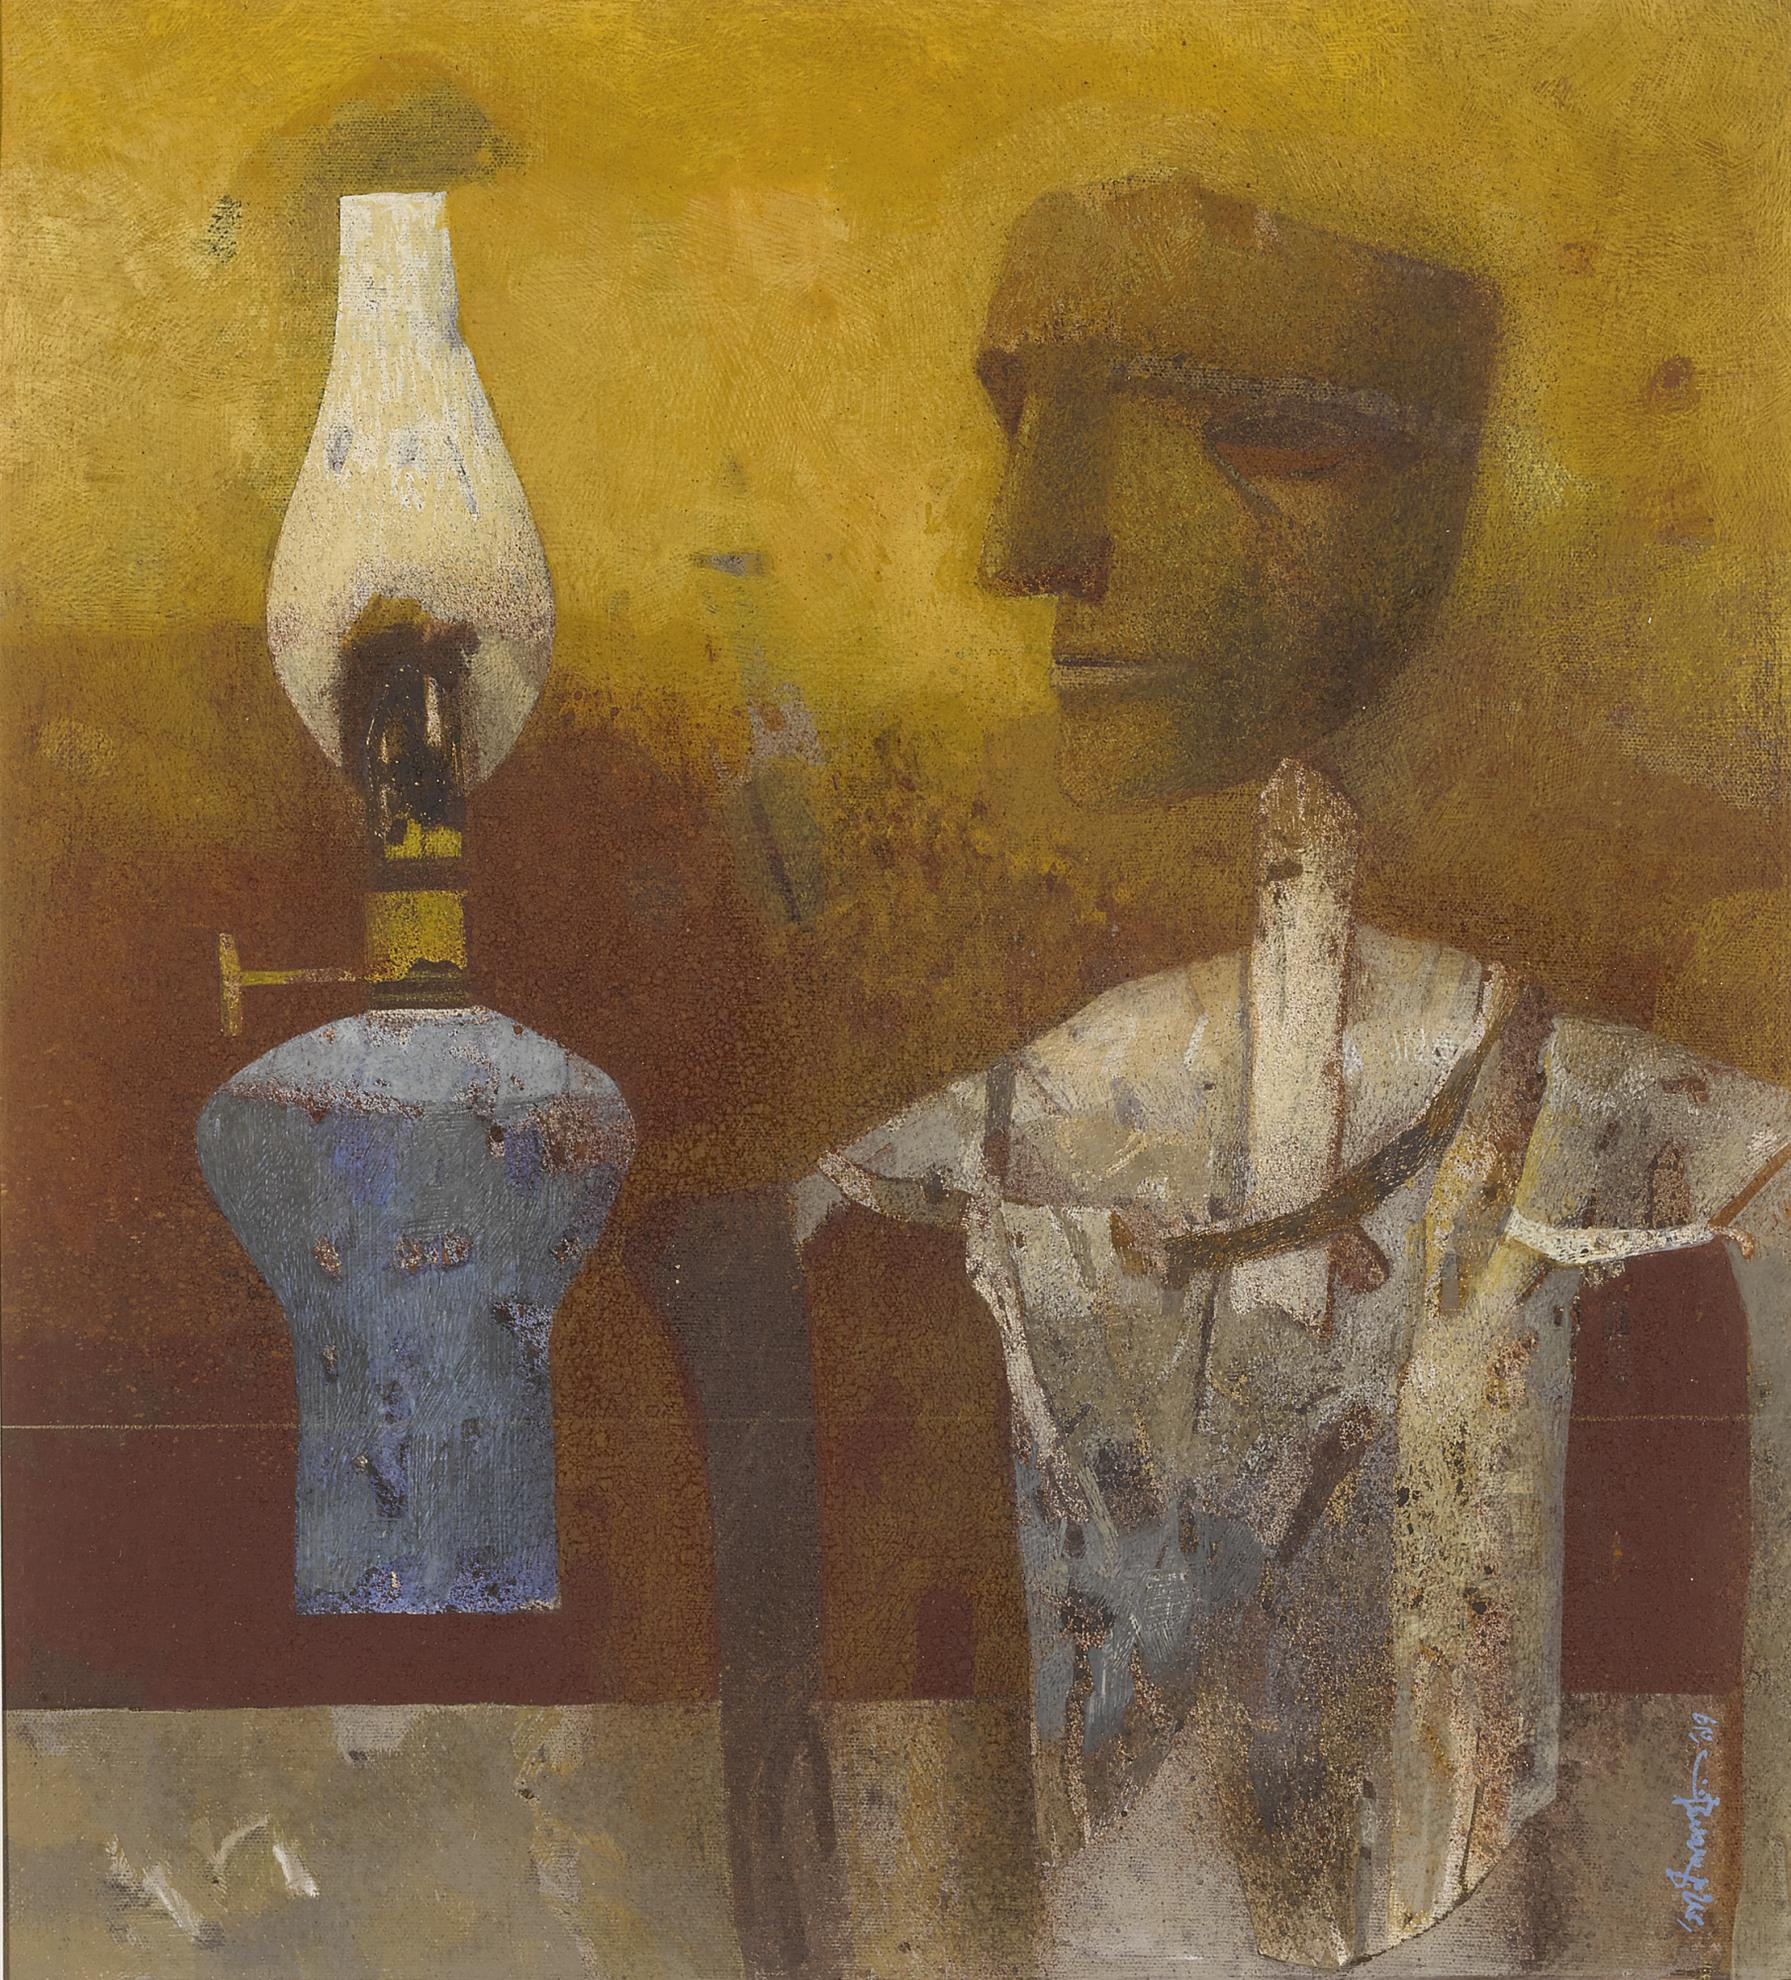 Ganesh Pyne - Lamp And The Effigy-1997